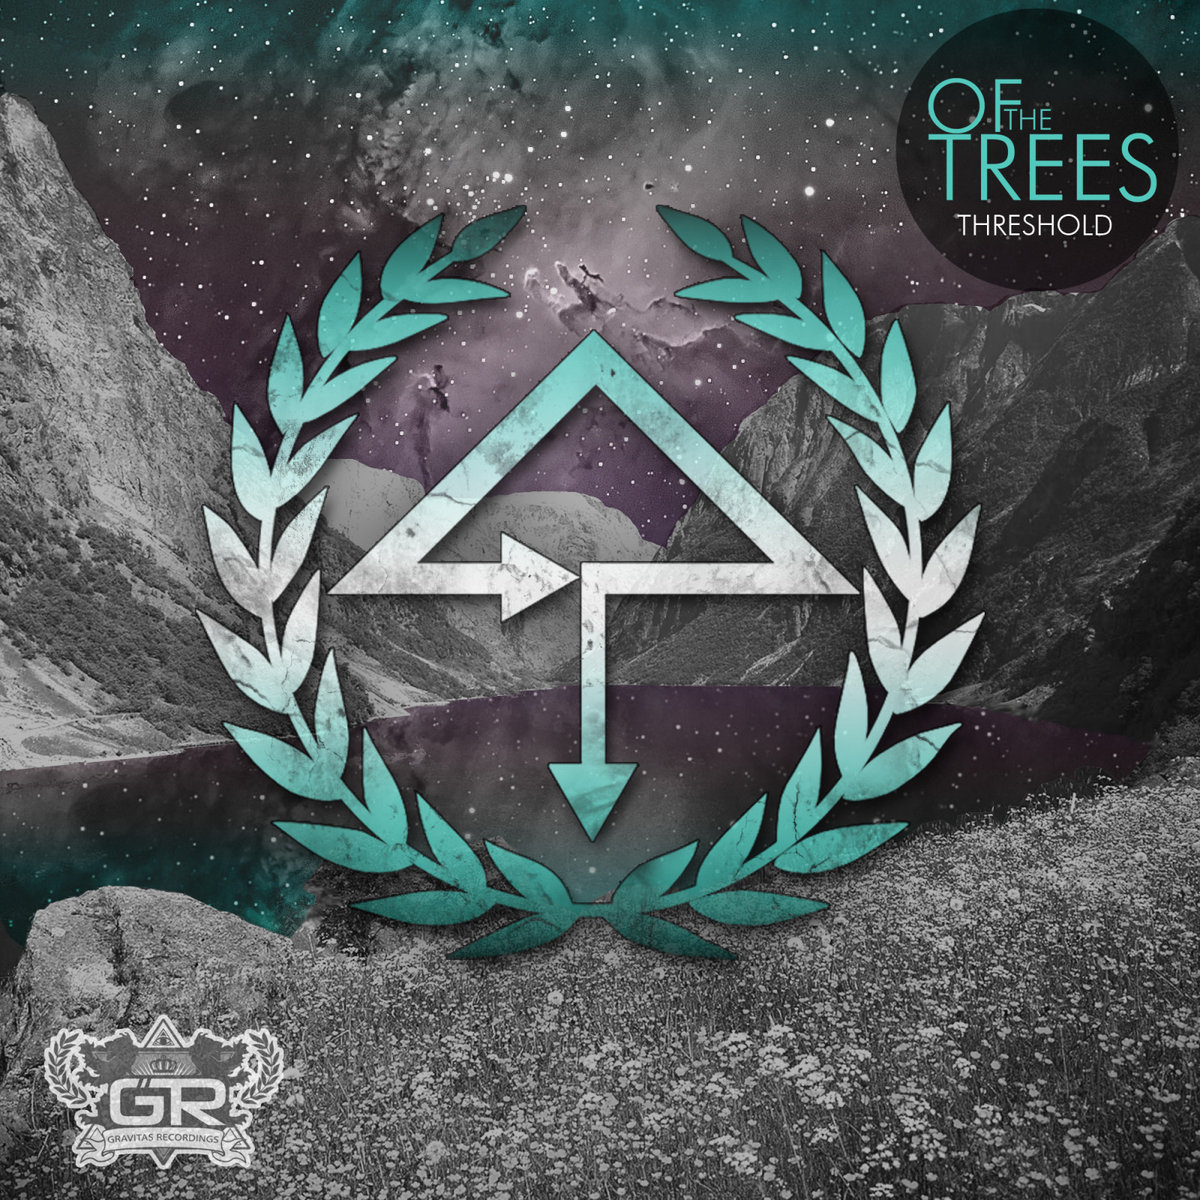 Of The Trees - Threshold @ 'Threshold' album (808, dope music)